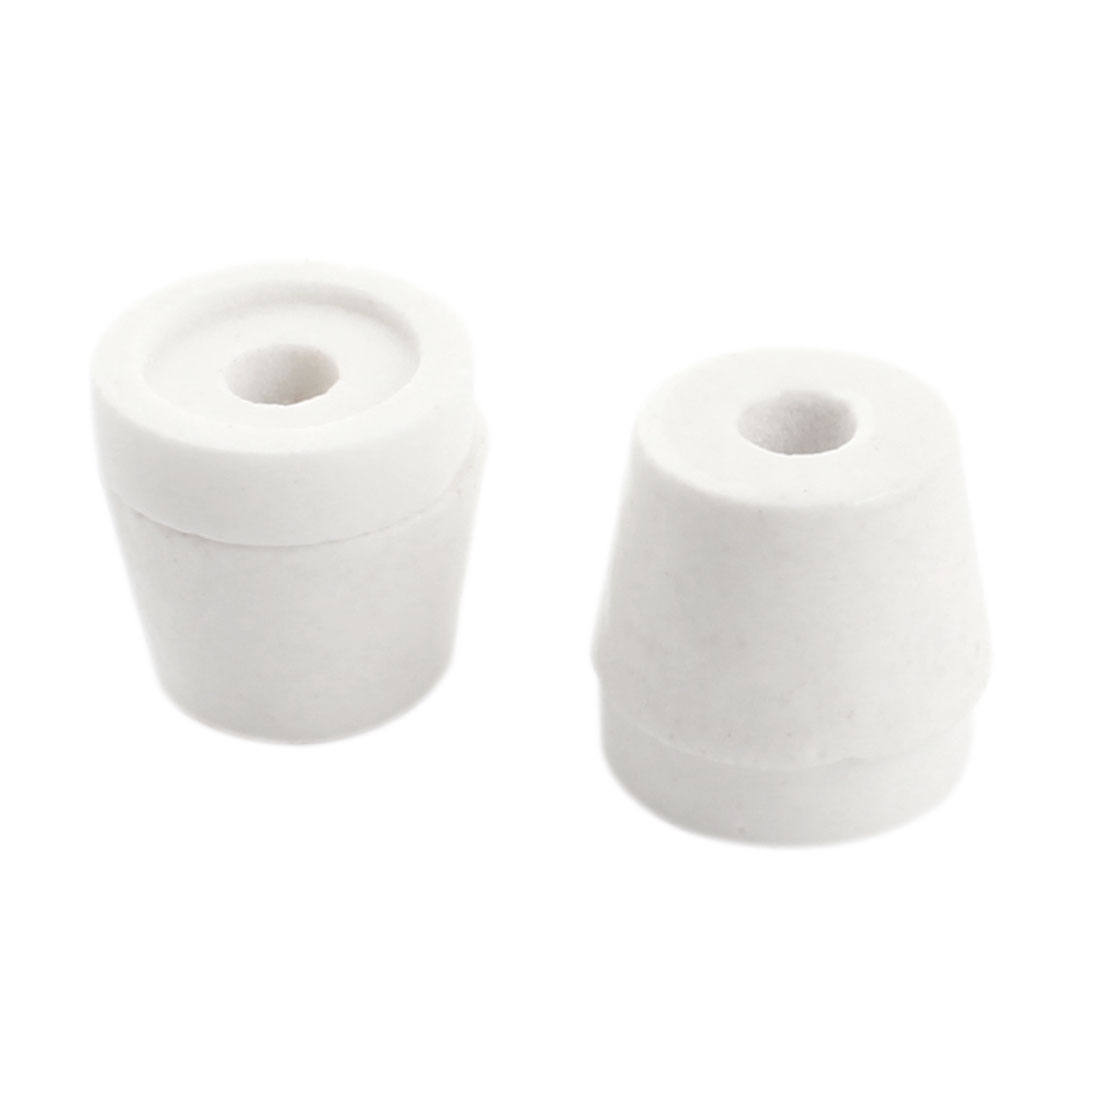 2PCS White 6mm Hole Diameter Wire Tapered Ceramic Electrical Insulator Insulation Bead AC250V 500C Type3